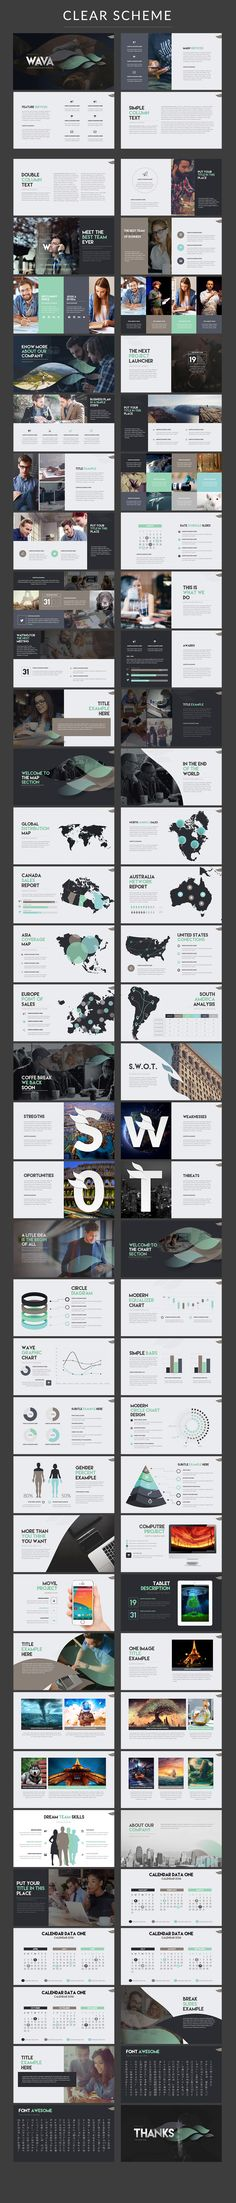 Elegantly modern PowerPoint presentation template with inforgraphics and both a dark and light color scheme.